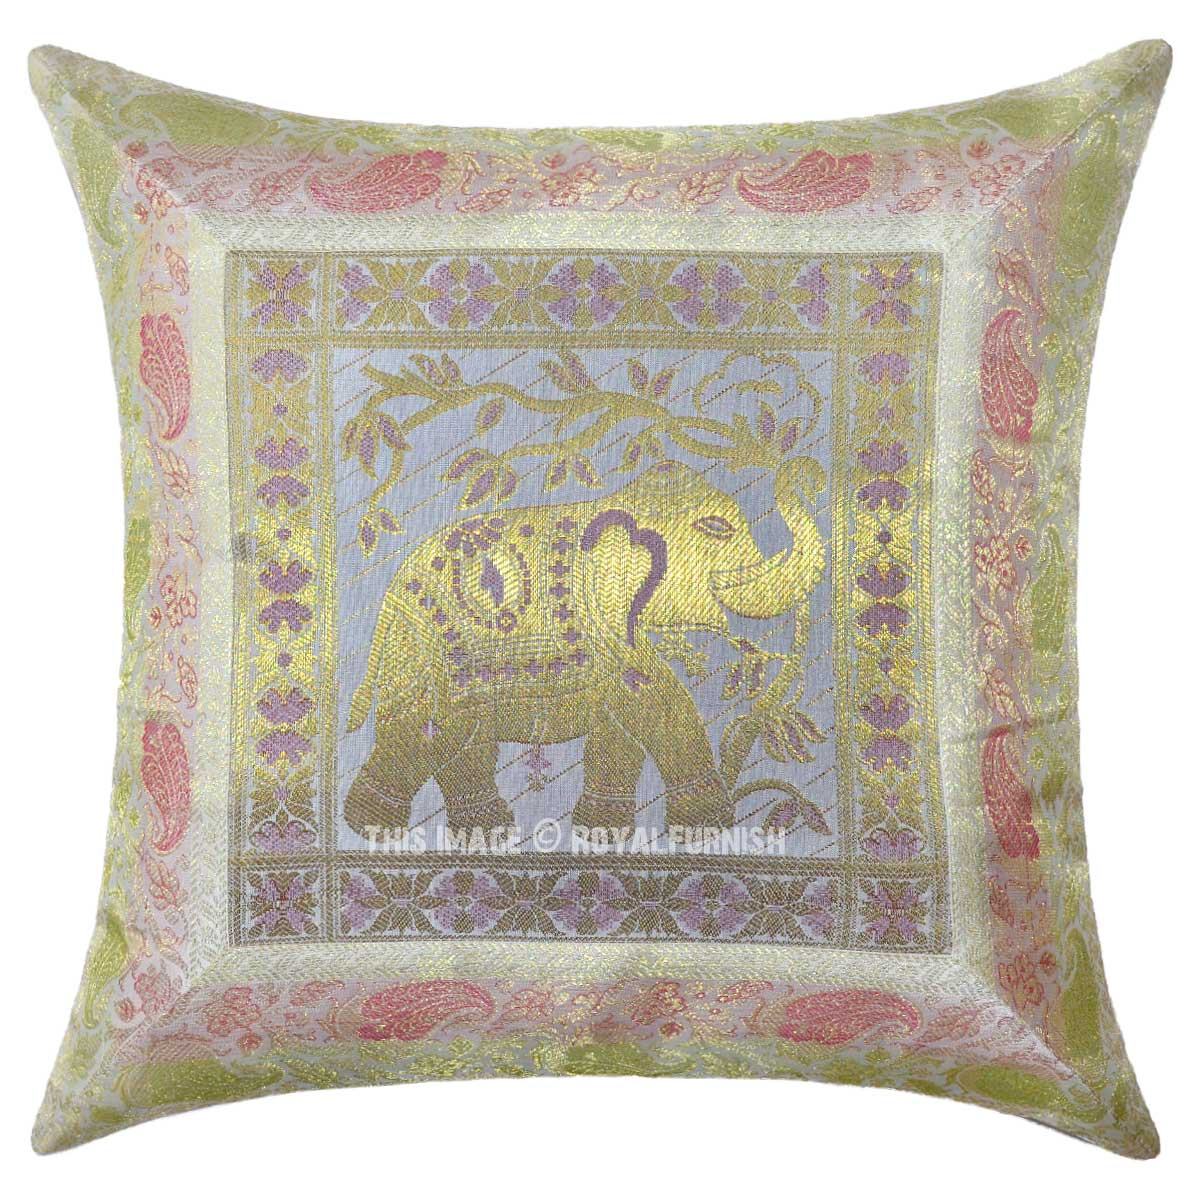 Decorative Pillows White : White Multi Decorative Elephant Silk Throw Pillow Cover 16X16 Inch - RoyalFurnish.com